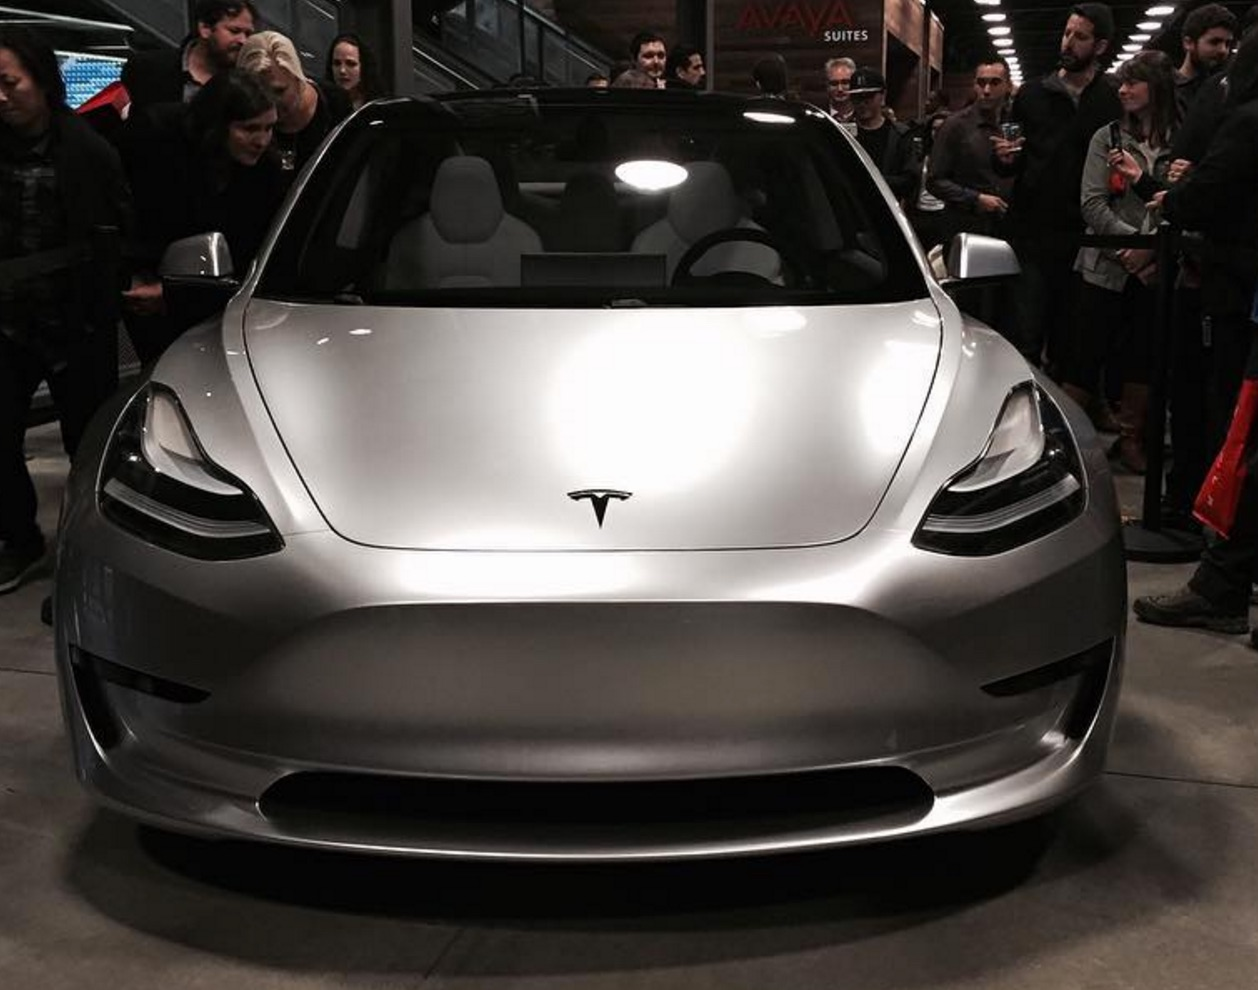 Gorgeous Silver Model 3 Becomes Centerpiece At Tesla